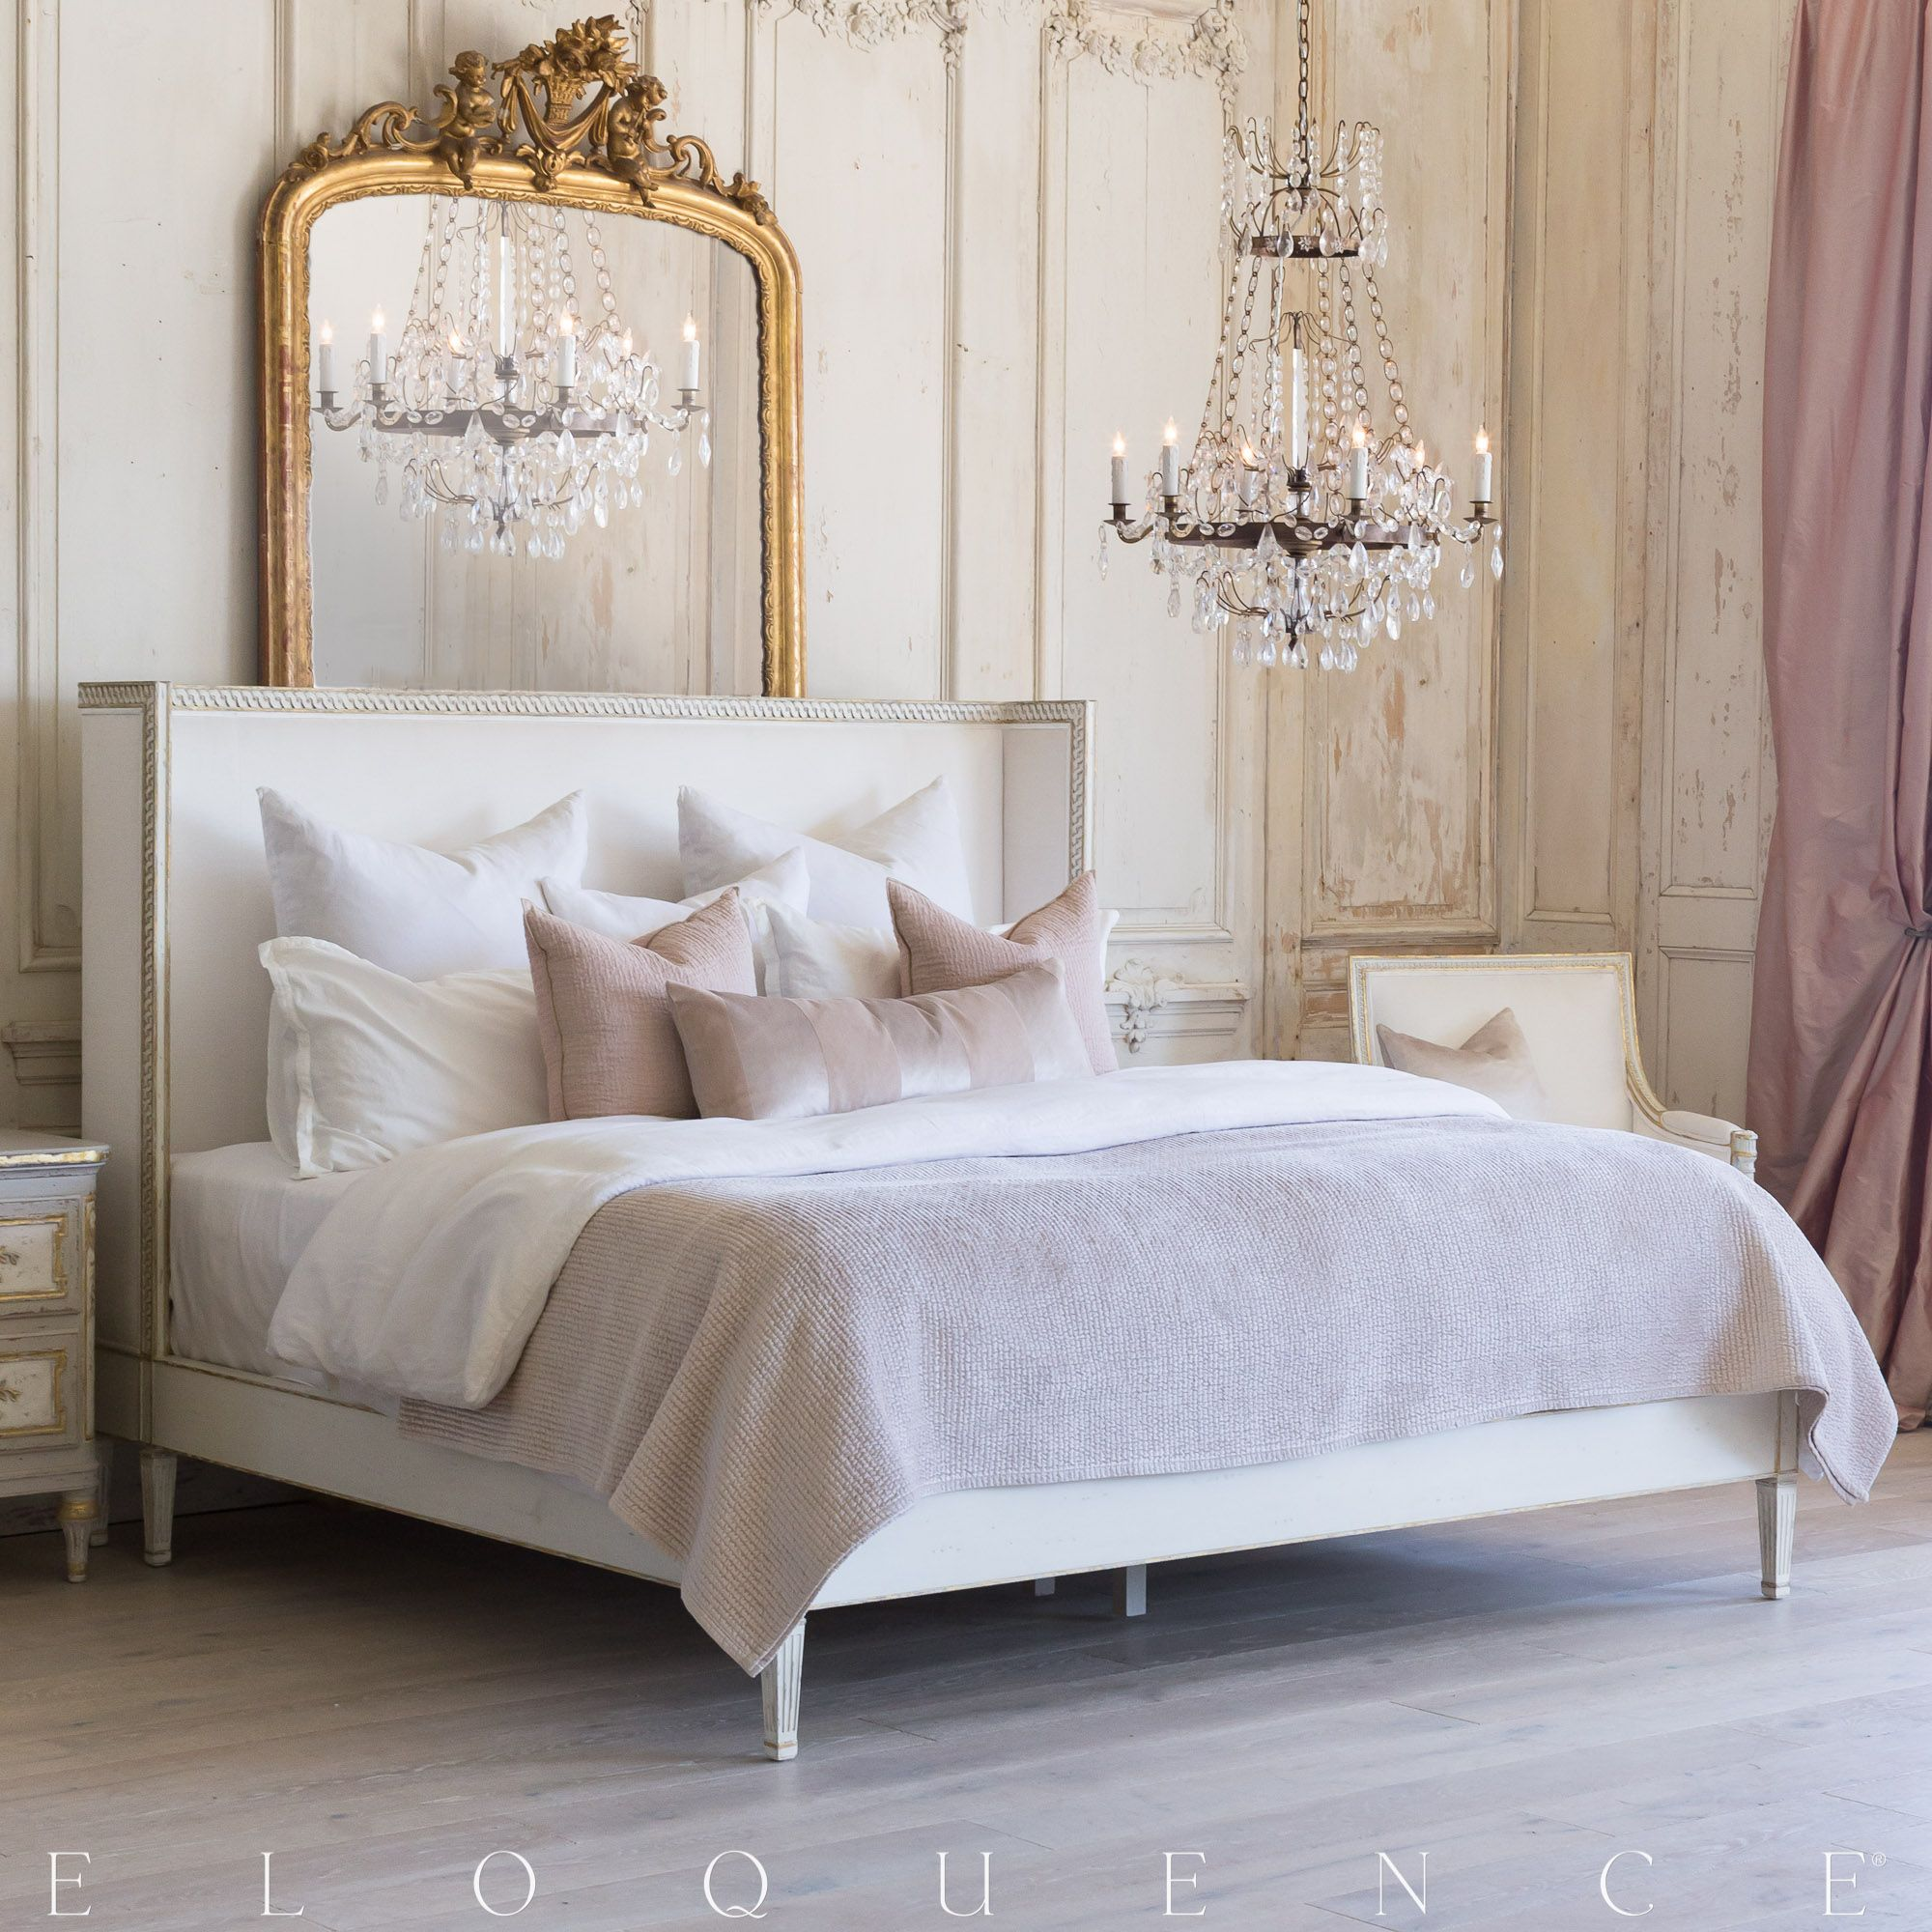 Eloquence Cassia Queen Bed In Antique White With Gold Leaf Finish